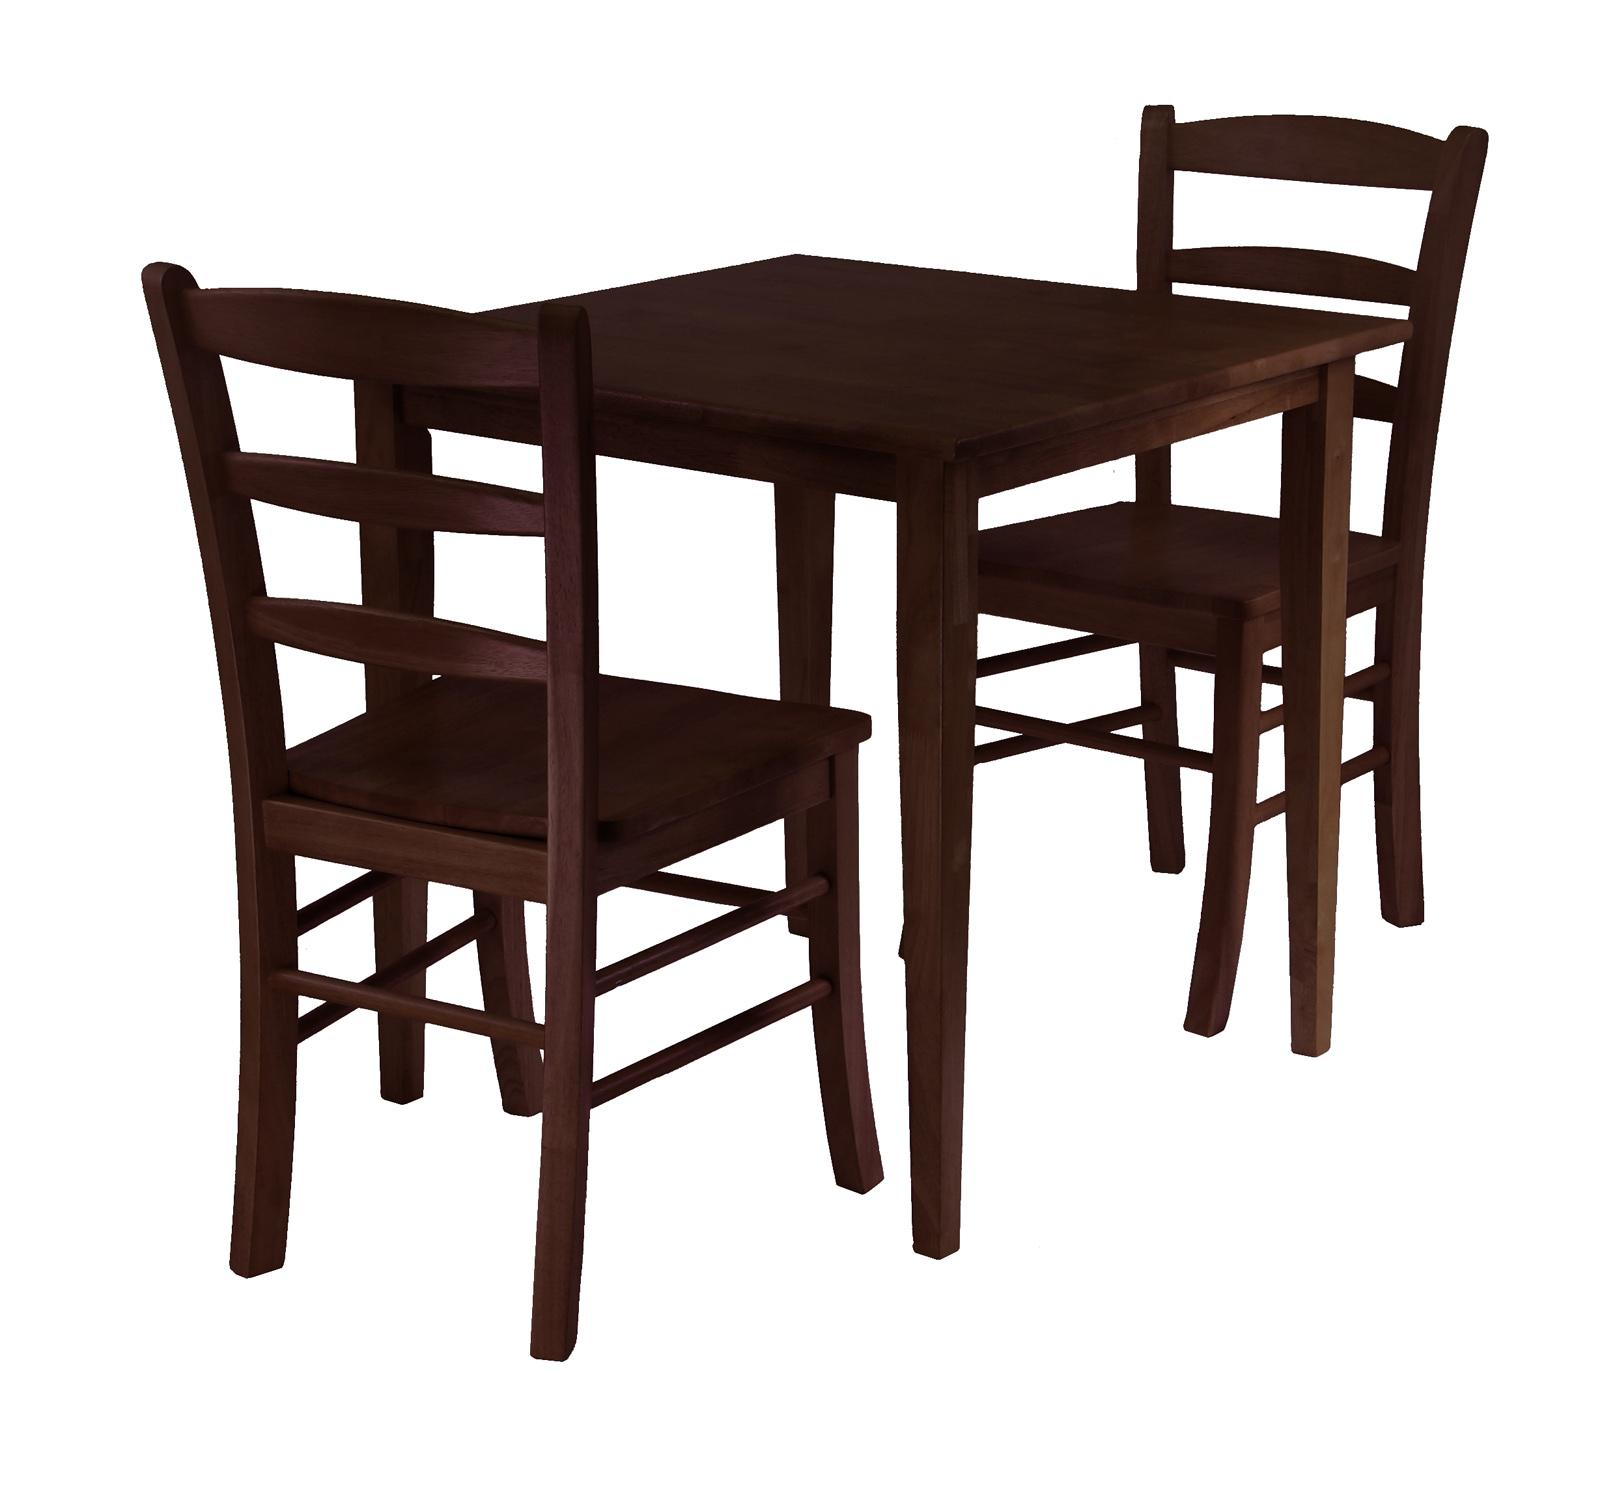 groveland chairs square kitchen table Groveland 3pc Square Dining Table with 2 Chairs